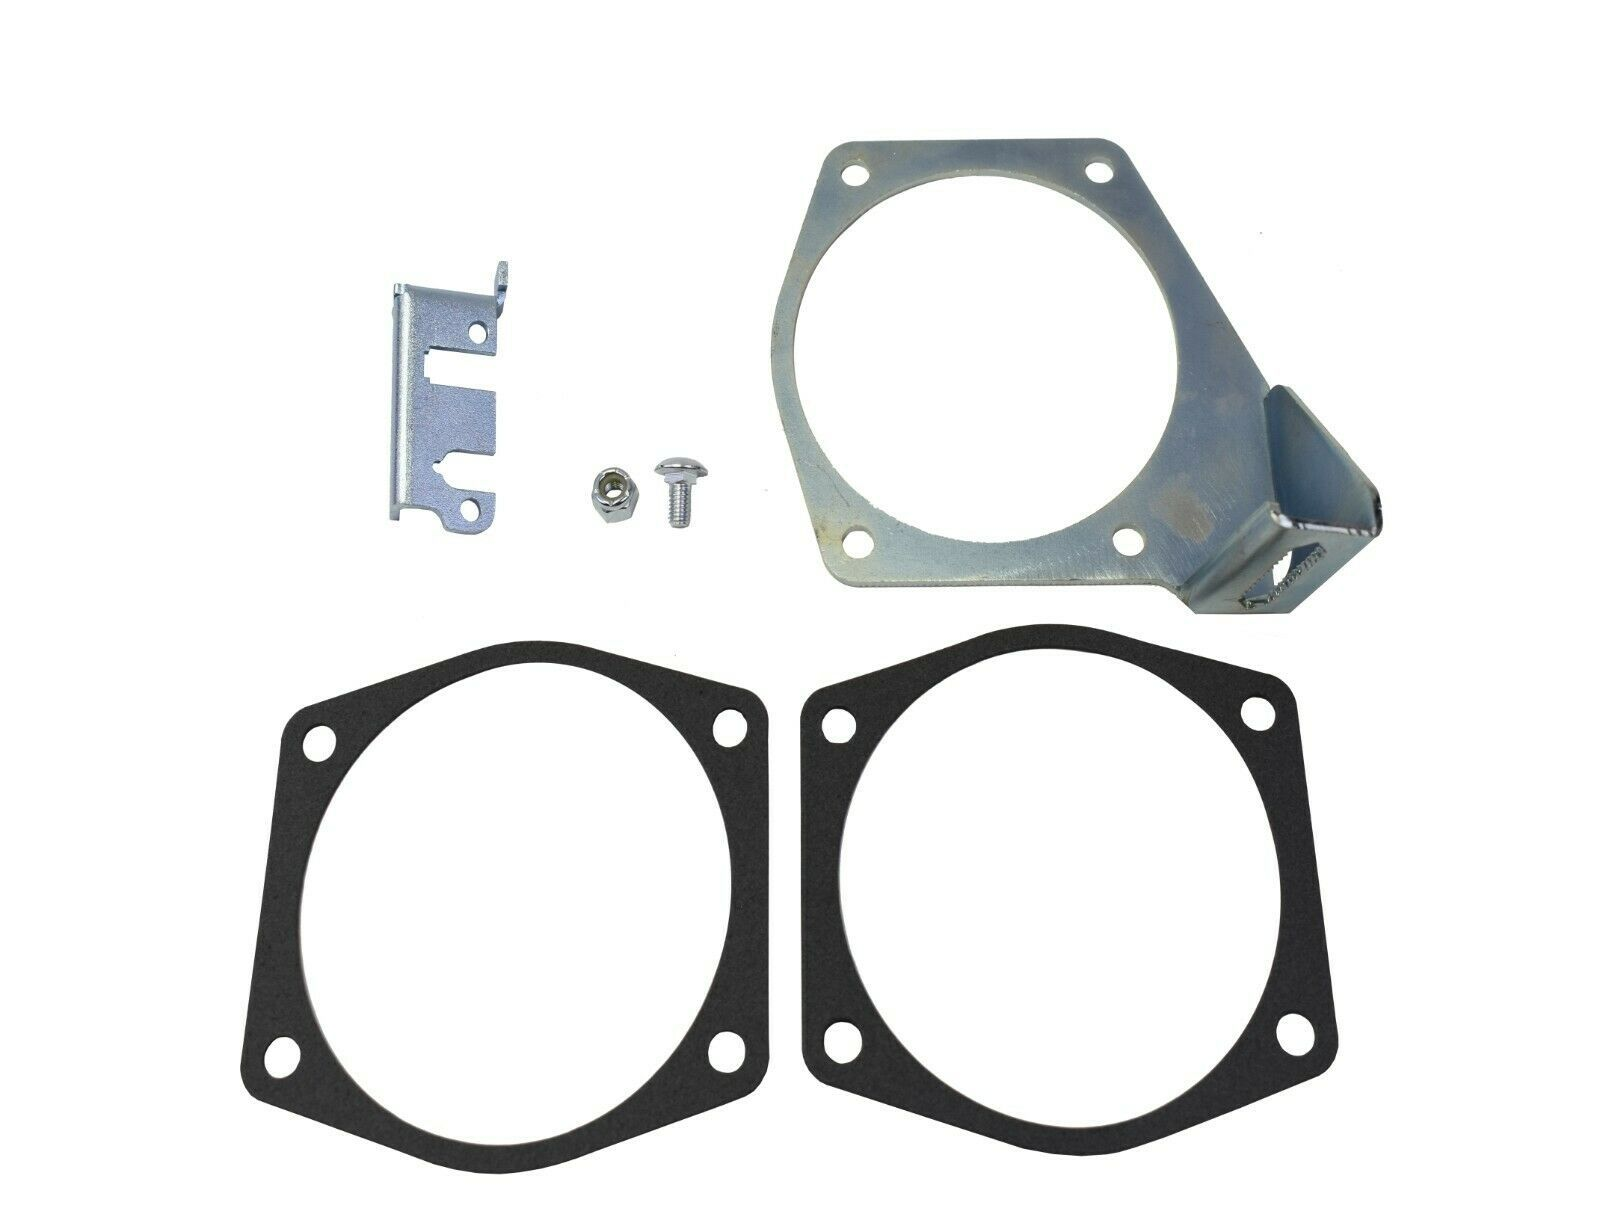 LS LSX LS1 LS2 LS3 LS6 LS7 Throttle Cable Bracket For Intakes 92MM 102MM SILVER